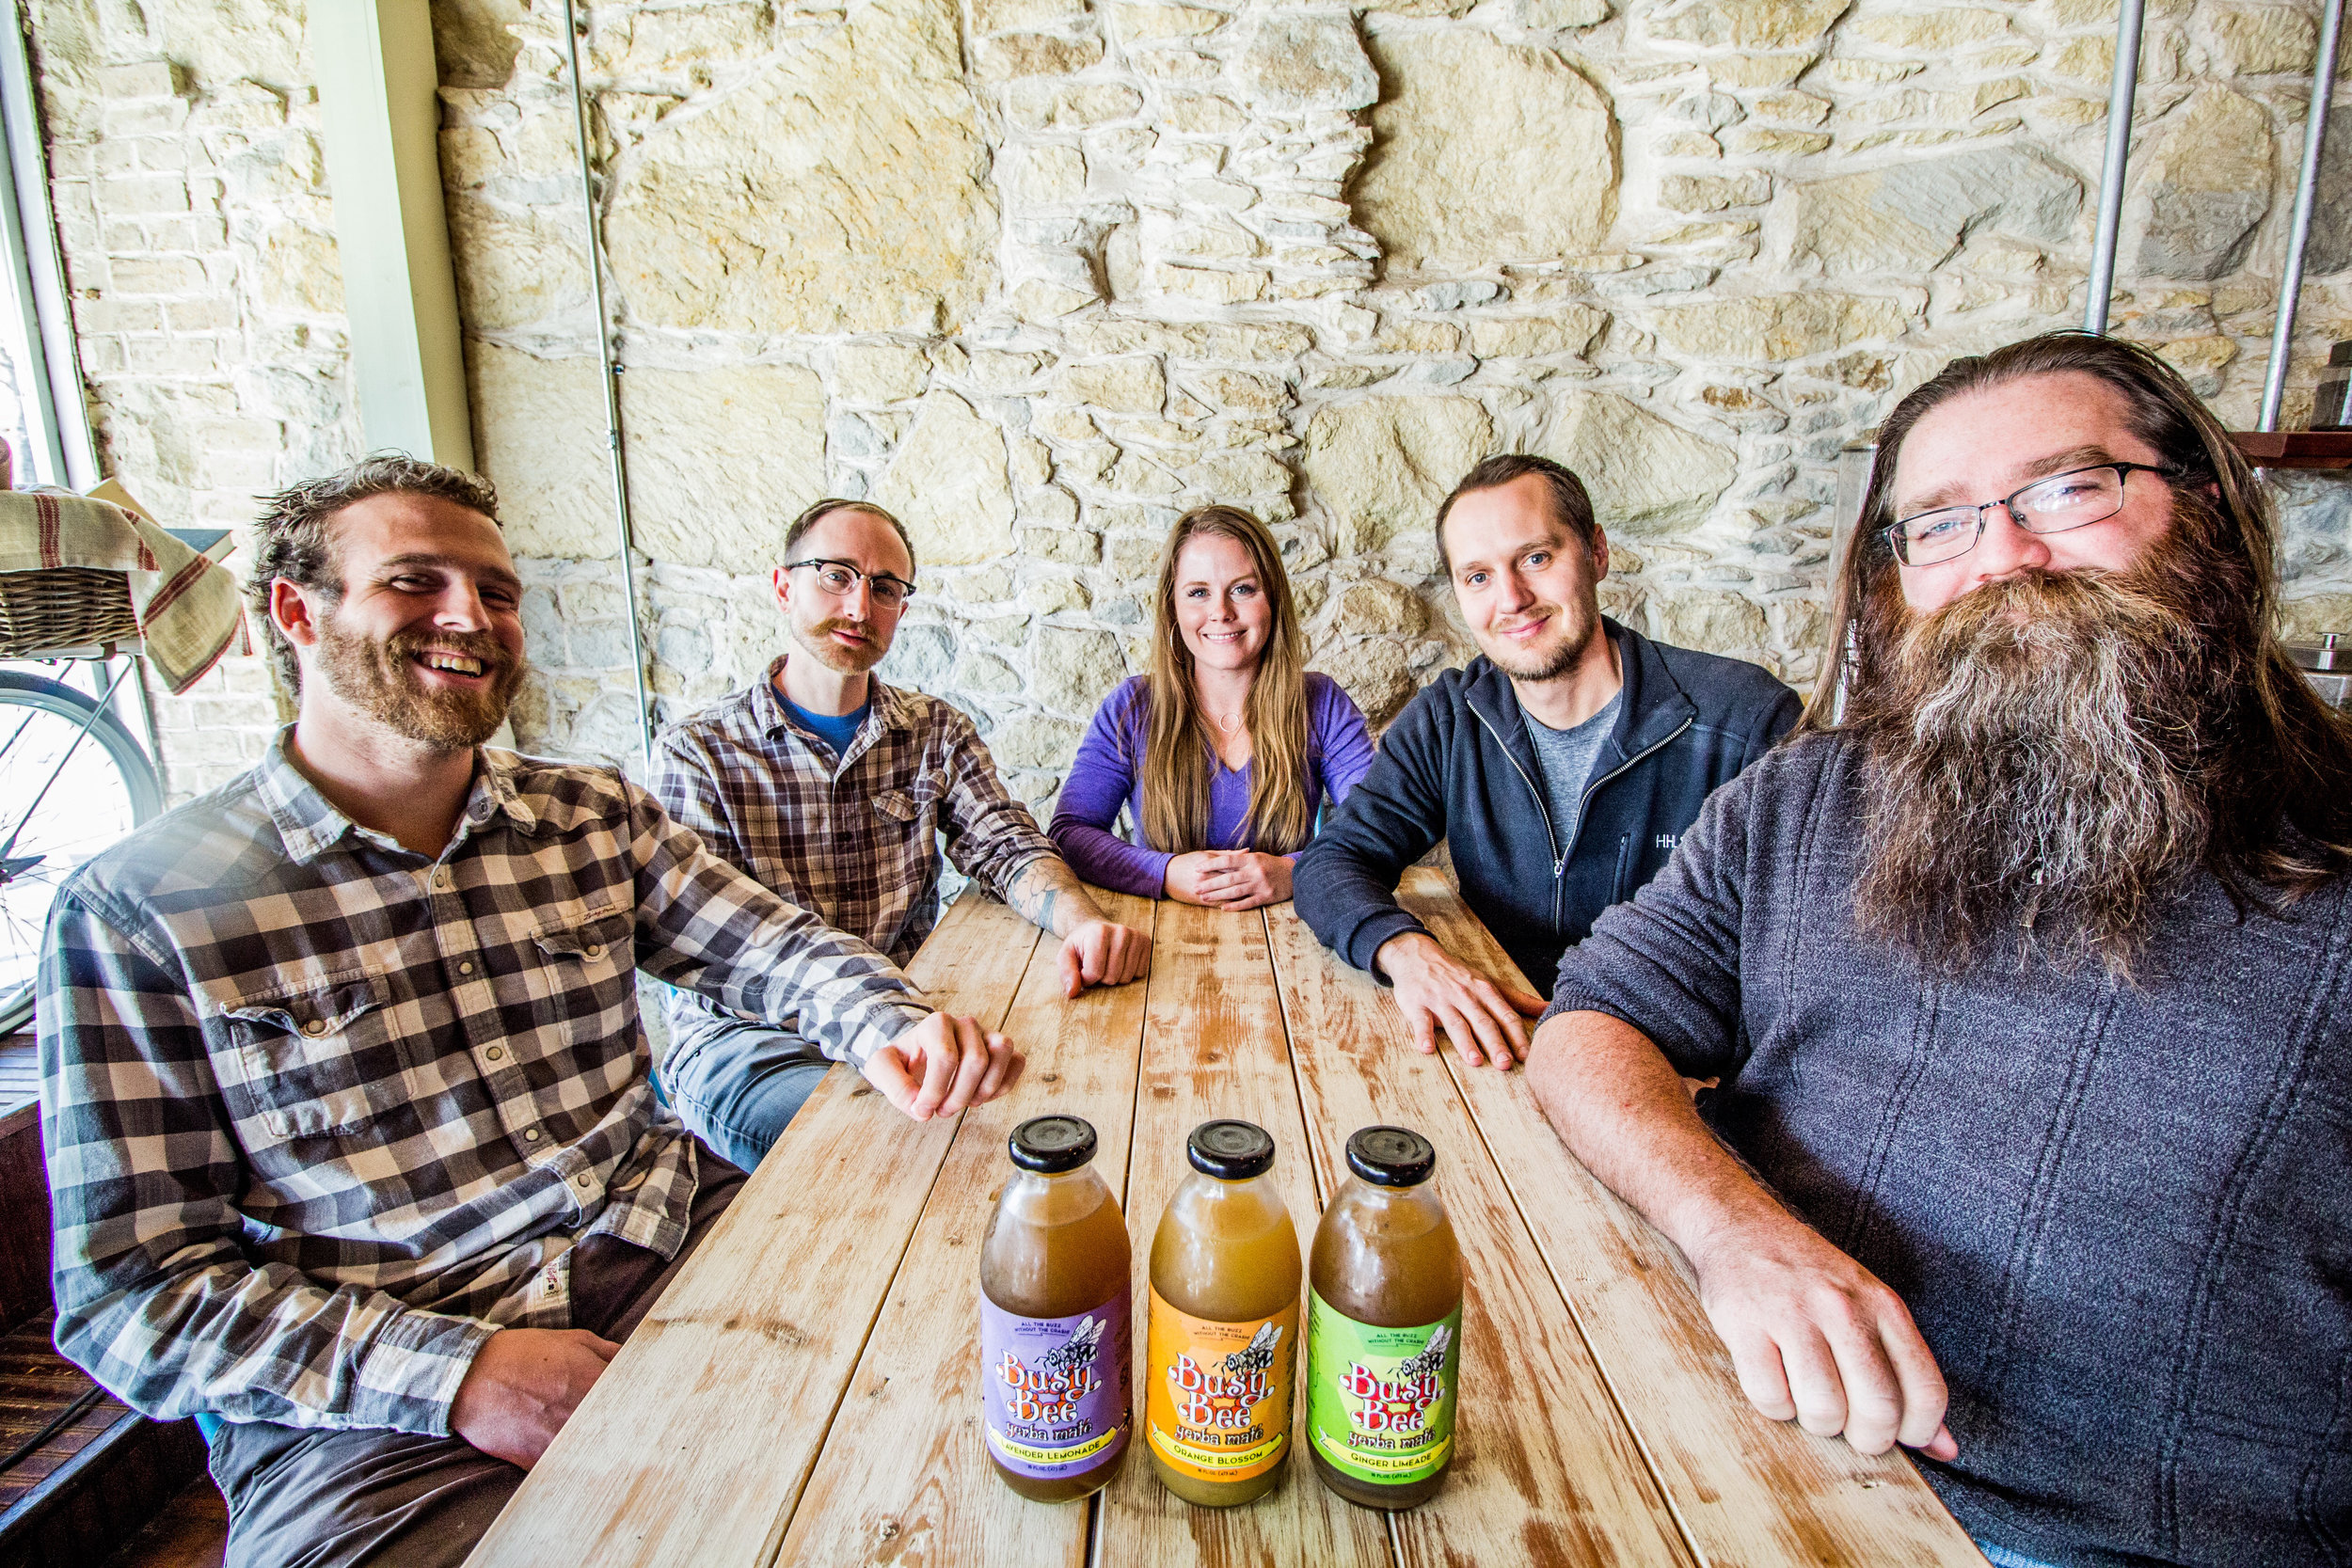 From left to right, Ian Lee (Co Founder), Adam Lilley (Co Founder), Jayme Starrak (Co Founder and CEO), Kyle Mylius (Co Founder), Nathan Todd (Co Founder), Jared Yeager (not pictured, COO)